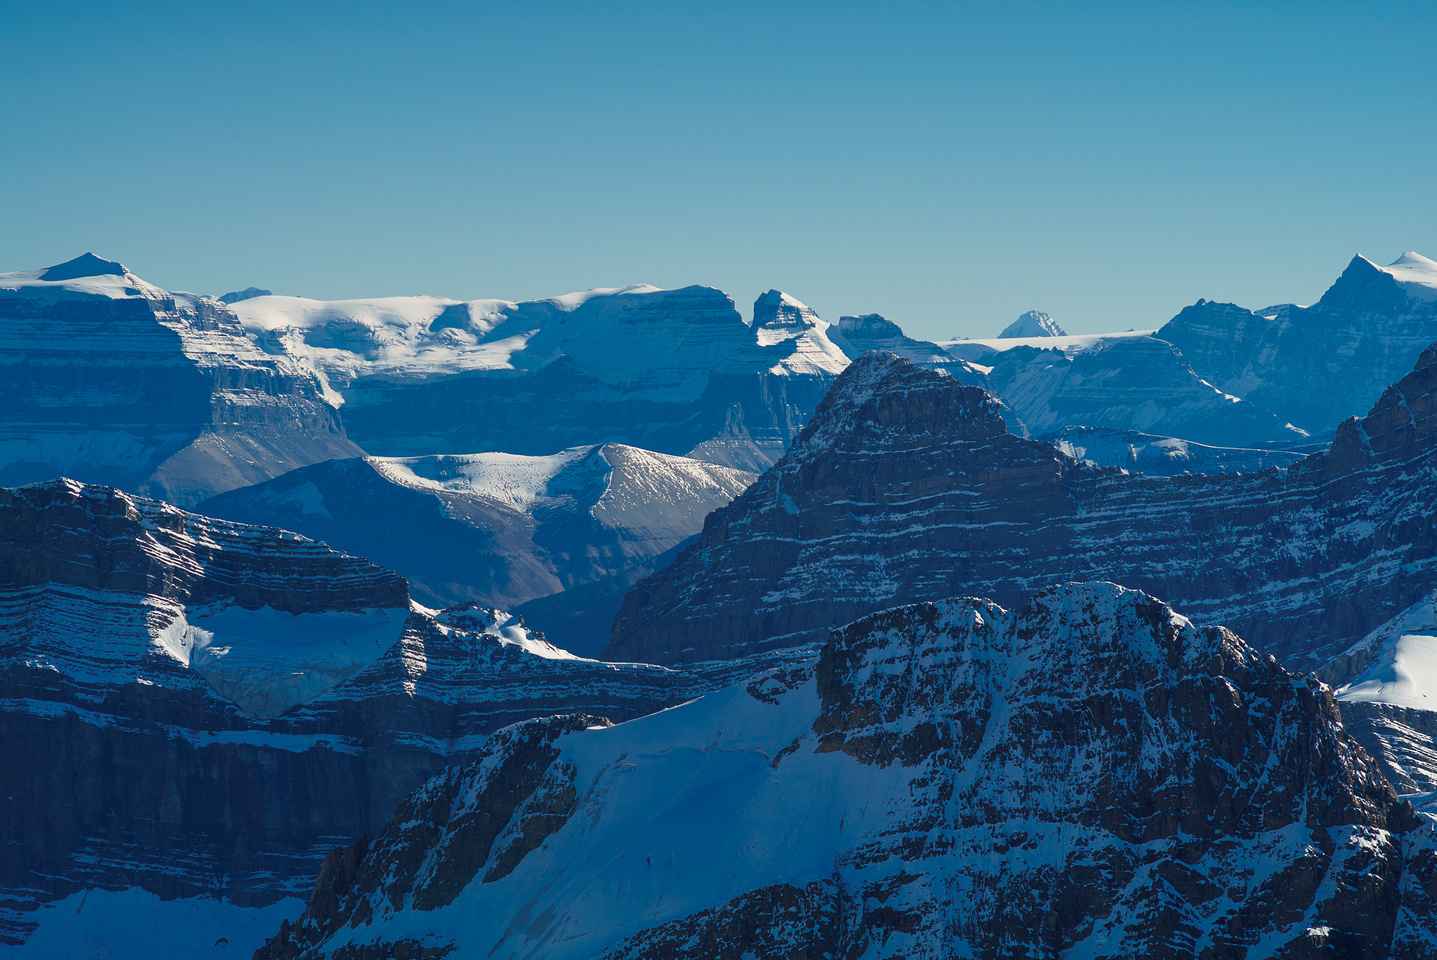 The gorgeous form of Mount Amery on the left with the Monchy Icefield curving around to the right.